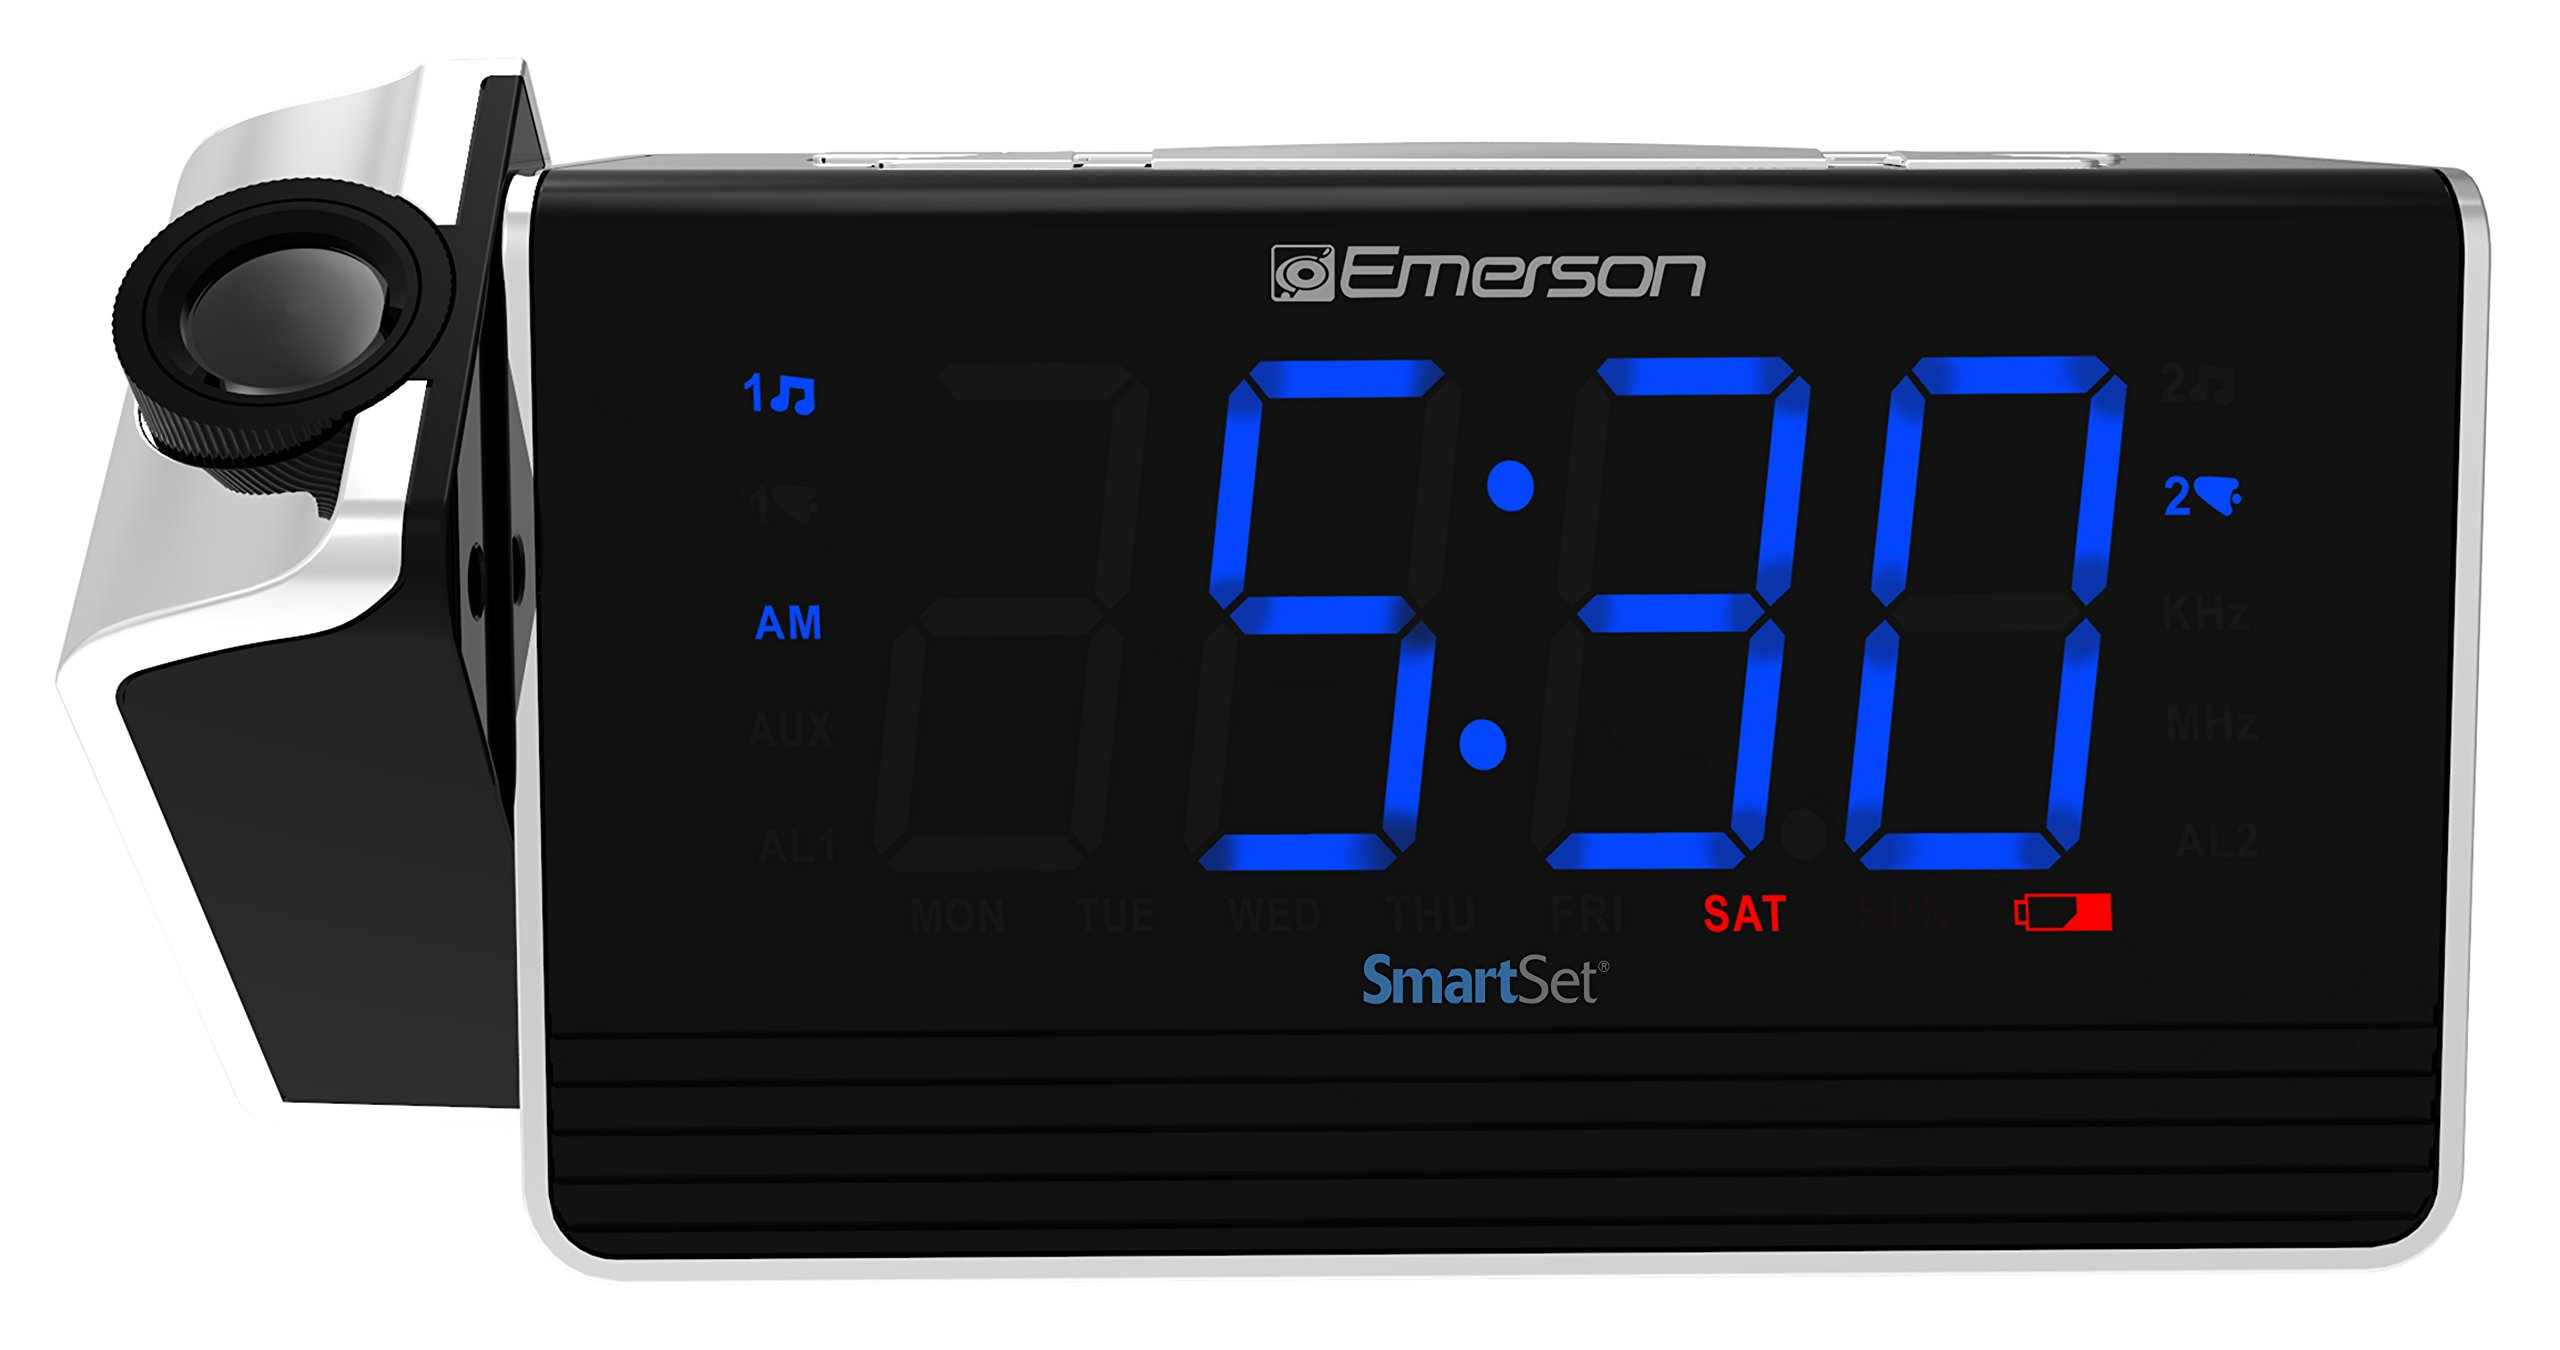 Cheap Emerson Smartset Clock Radio Find Kit Digital Fm Display Frequensi Counter Untuk Tuner Get Quotations Projection Alarm With Usb Charging For Iphone Ipad Ipod